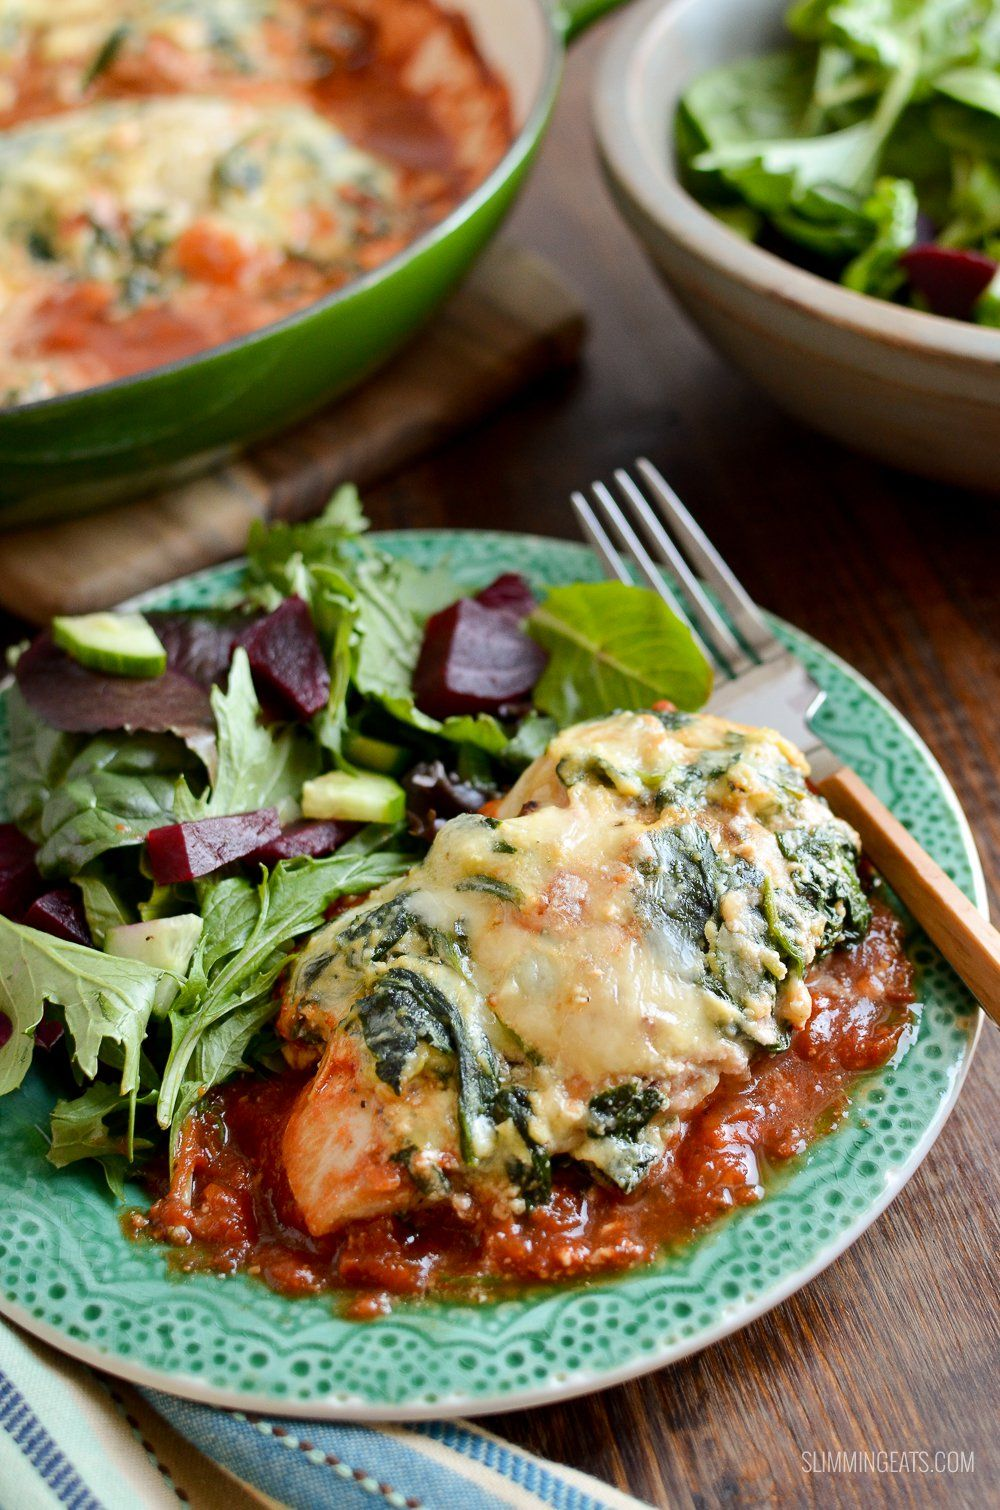 Syn Free Ricotta Spinach Topped Chicken Is The Ultimate